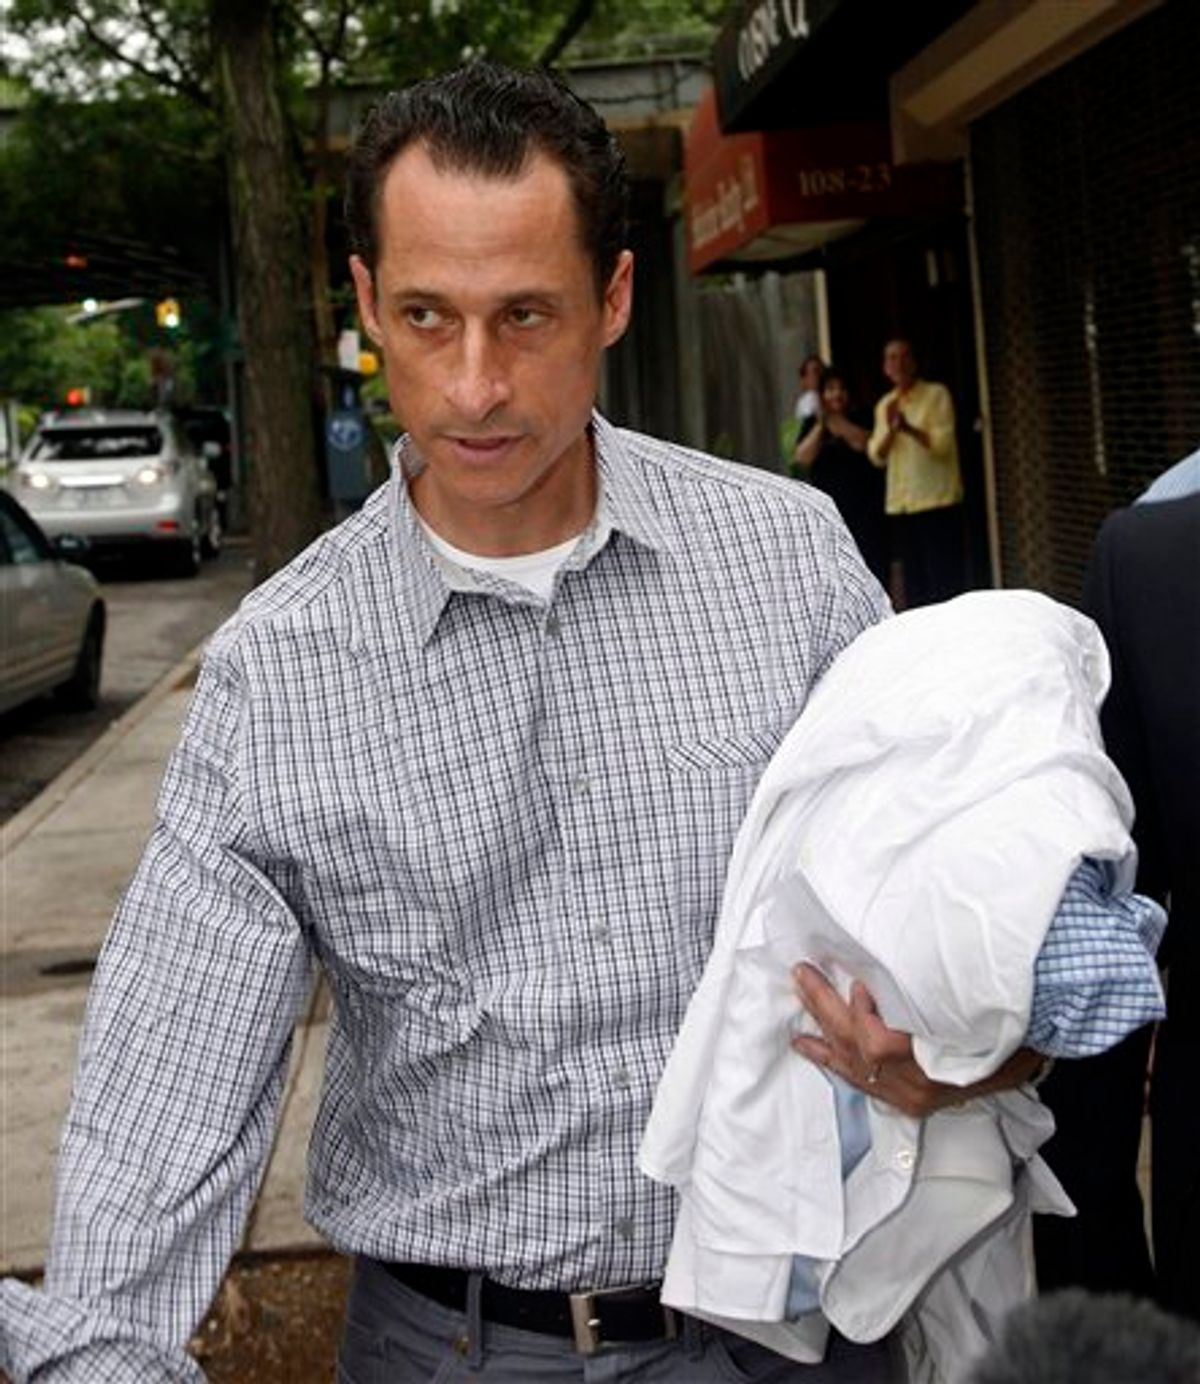 FILE - In this June 11, 2011 file photo, Rep. Anthony Weiner, D-N.Y., carries his laundry to a laundromat near his home in the Queens borough of New York, Saturday, June  11, 2011. Weiner admitted last week that he had Tweeted sexually charged messages and photos to at least six women and lied about it.  (AP Photo/David Karp, File)  (AP)